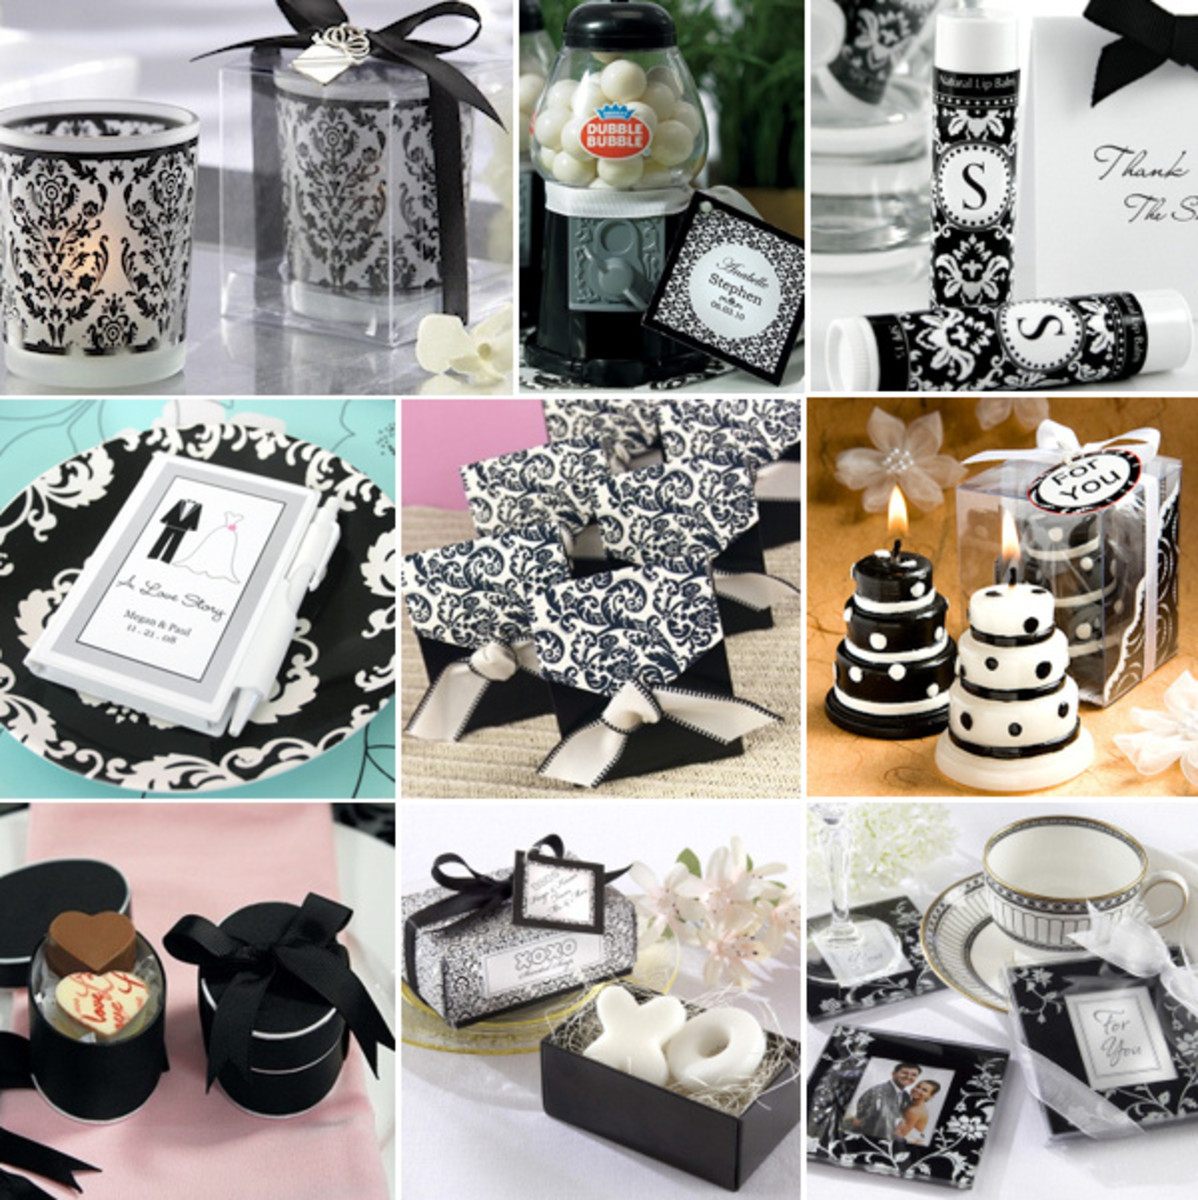 The black and white wedding cakes in the photo are full of fun and elegant